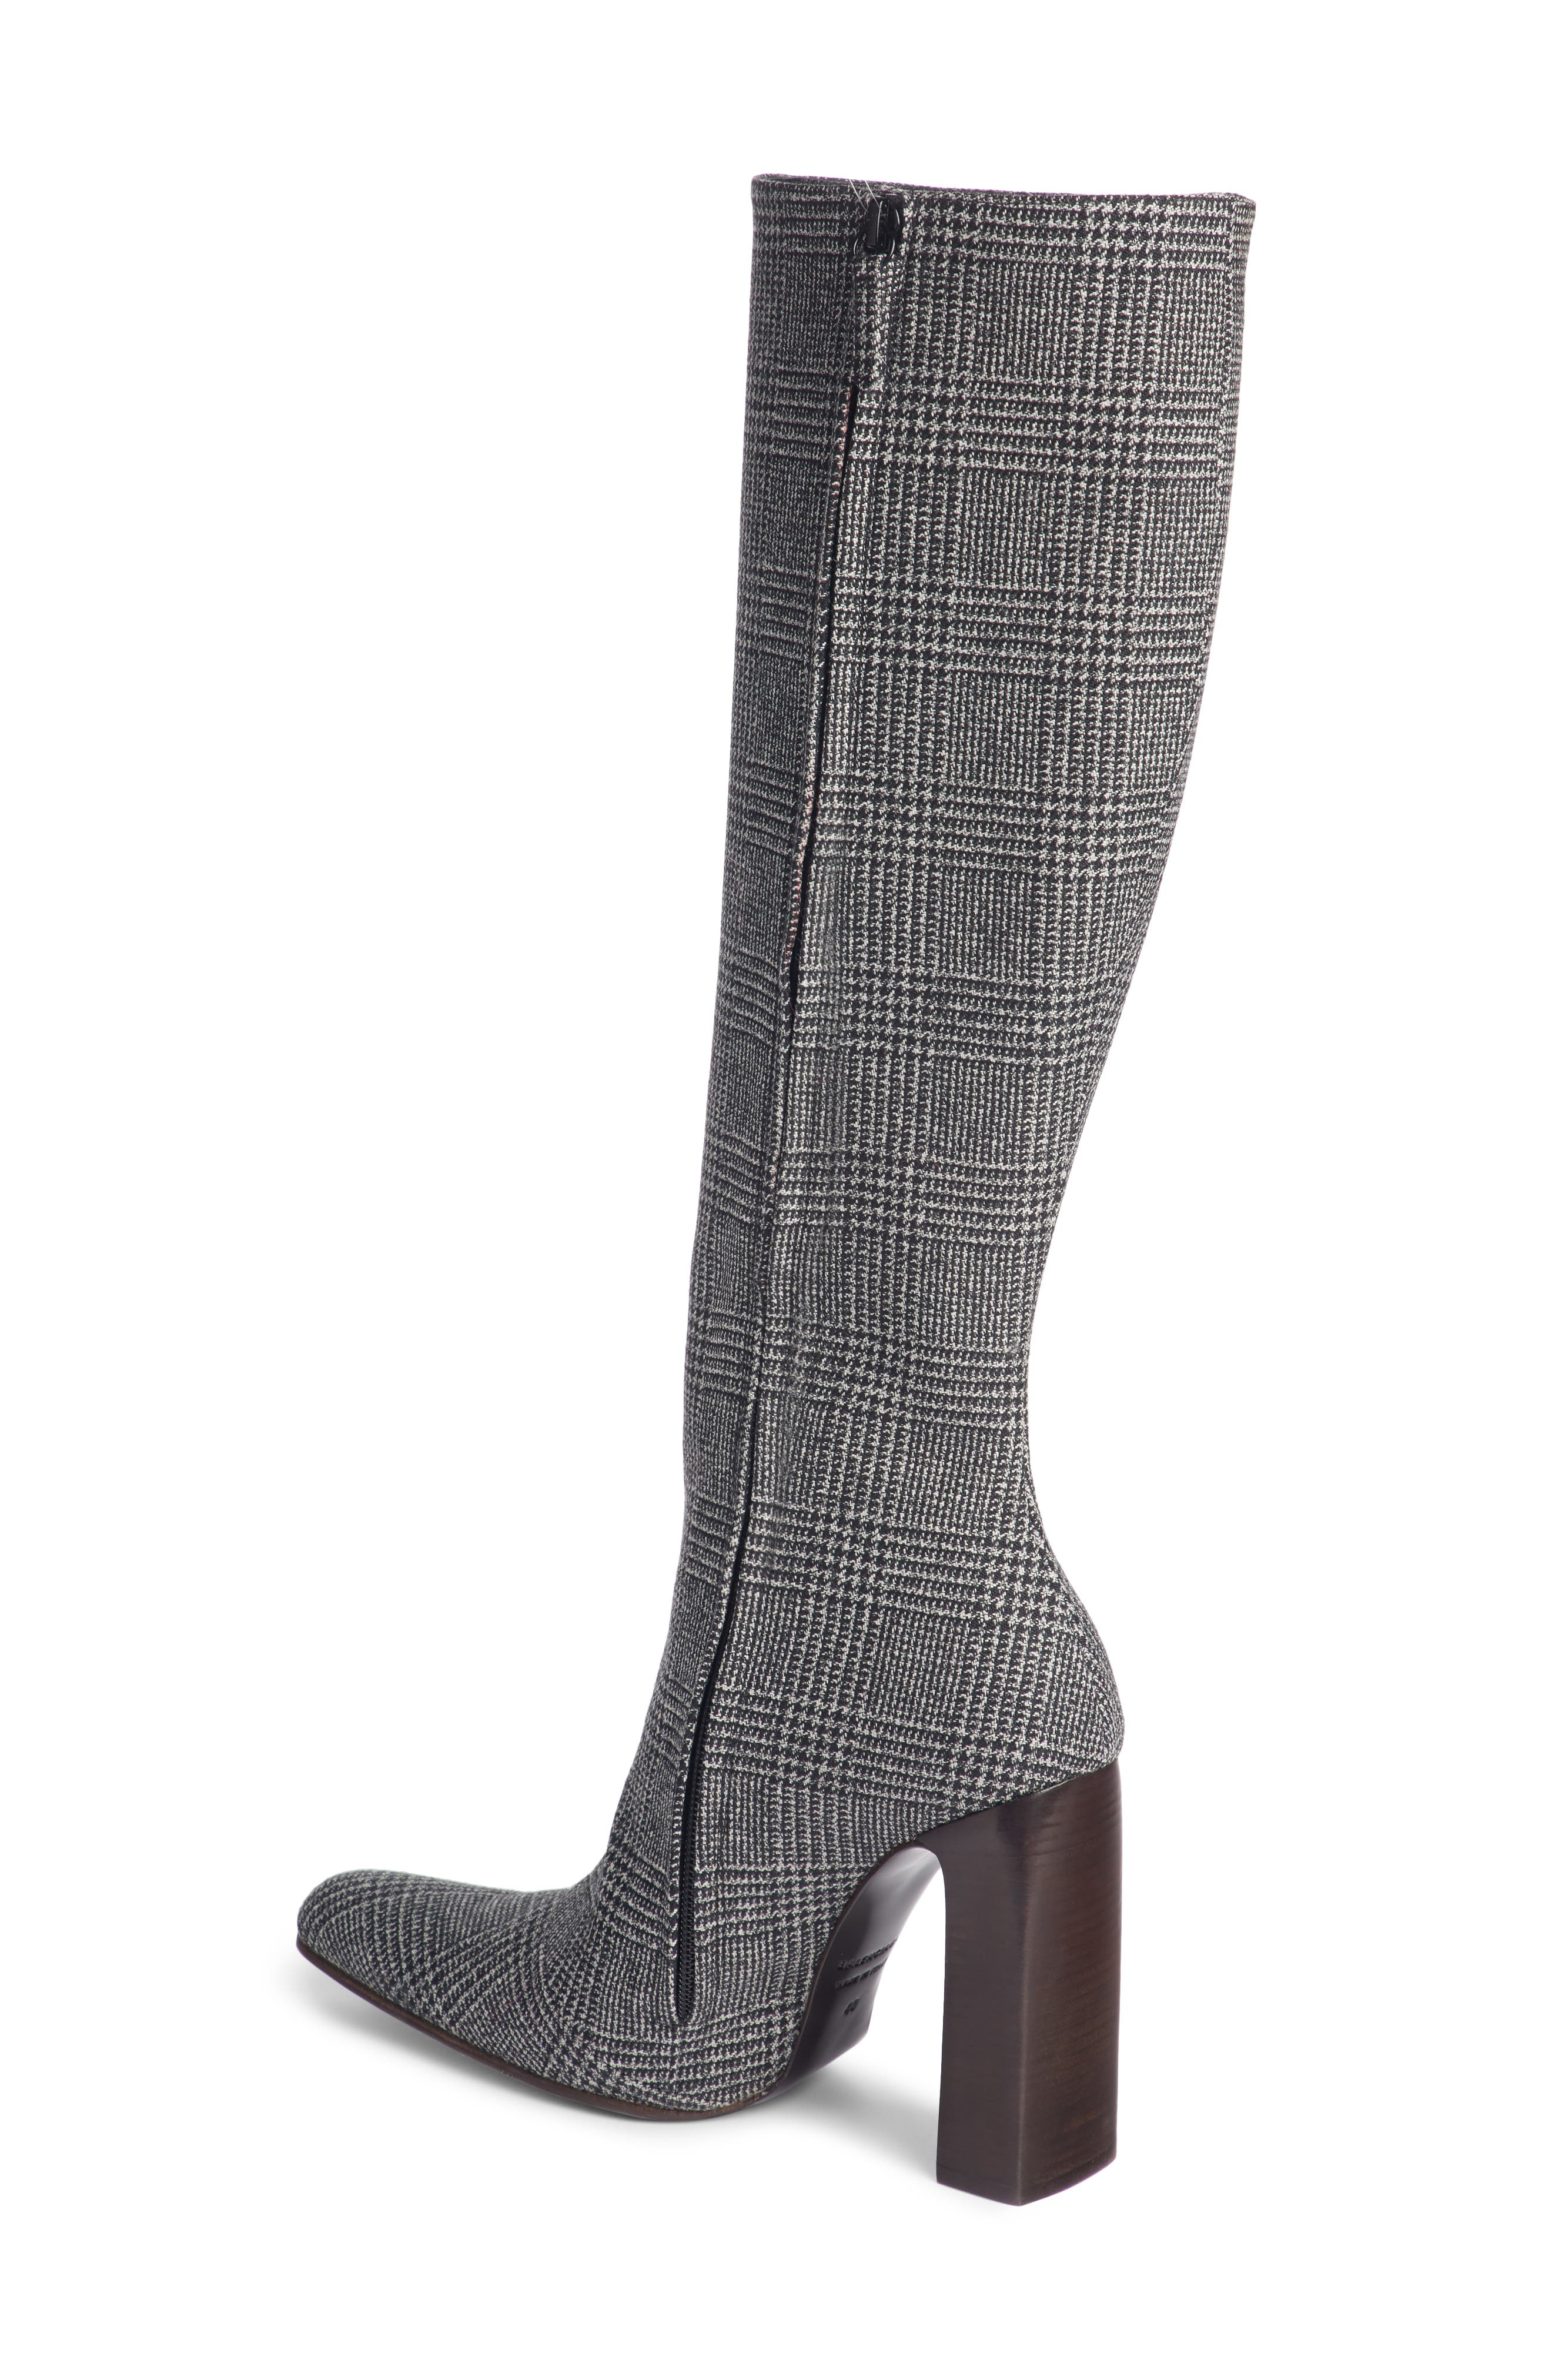 Prince of Wales Knee High Boot,                             Alternate thumbnail 2, color,                             GREY